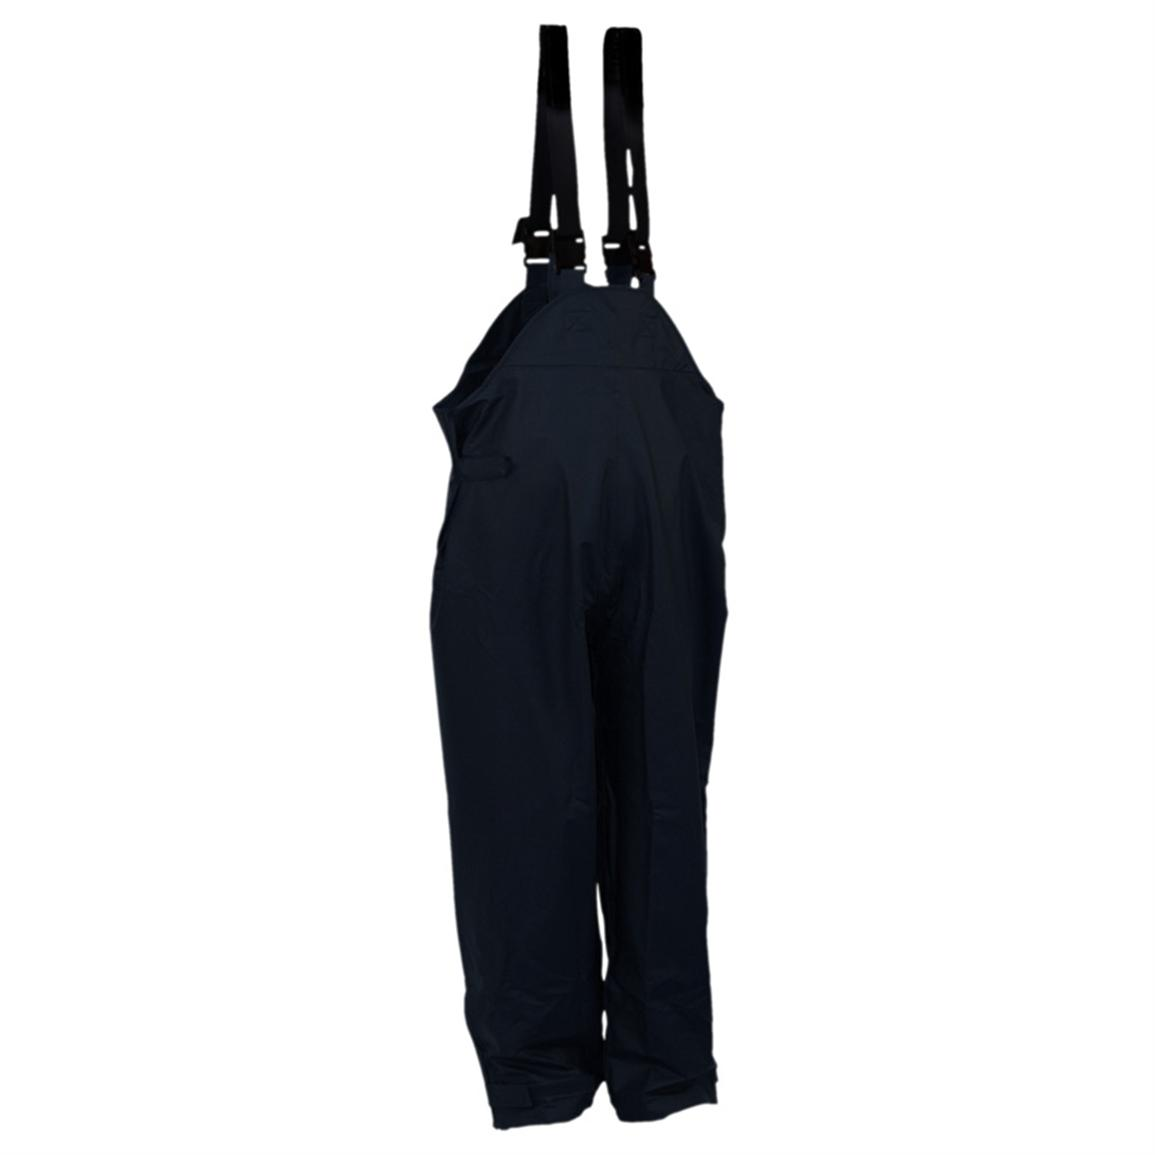 Men's WATERPROOF StormHide Down Pour Bibs from Gamehide, Navy